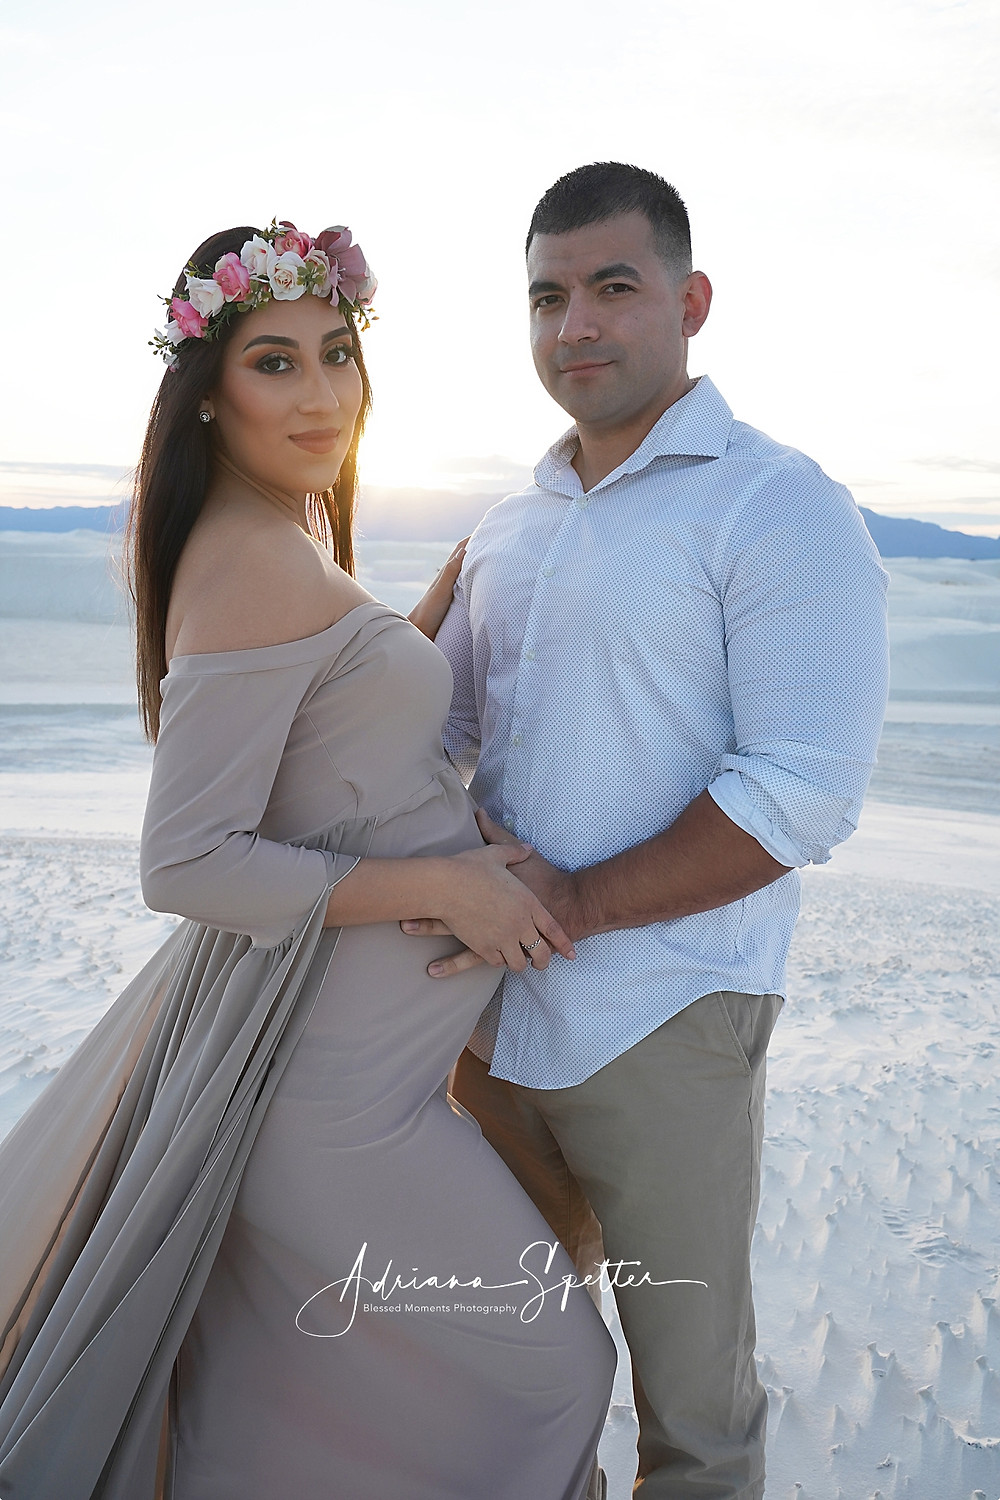 El Paso Couple posing for a maternity shoot at White Sands National Park during sunset